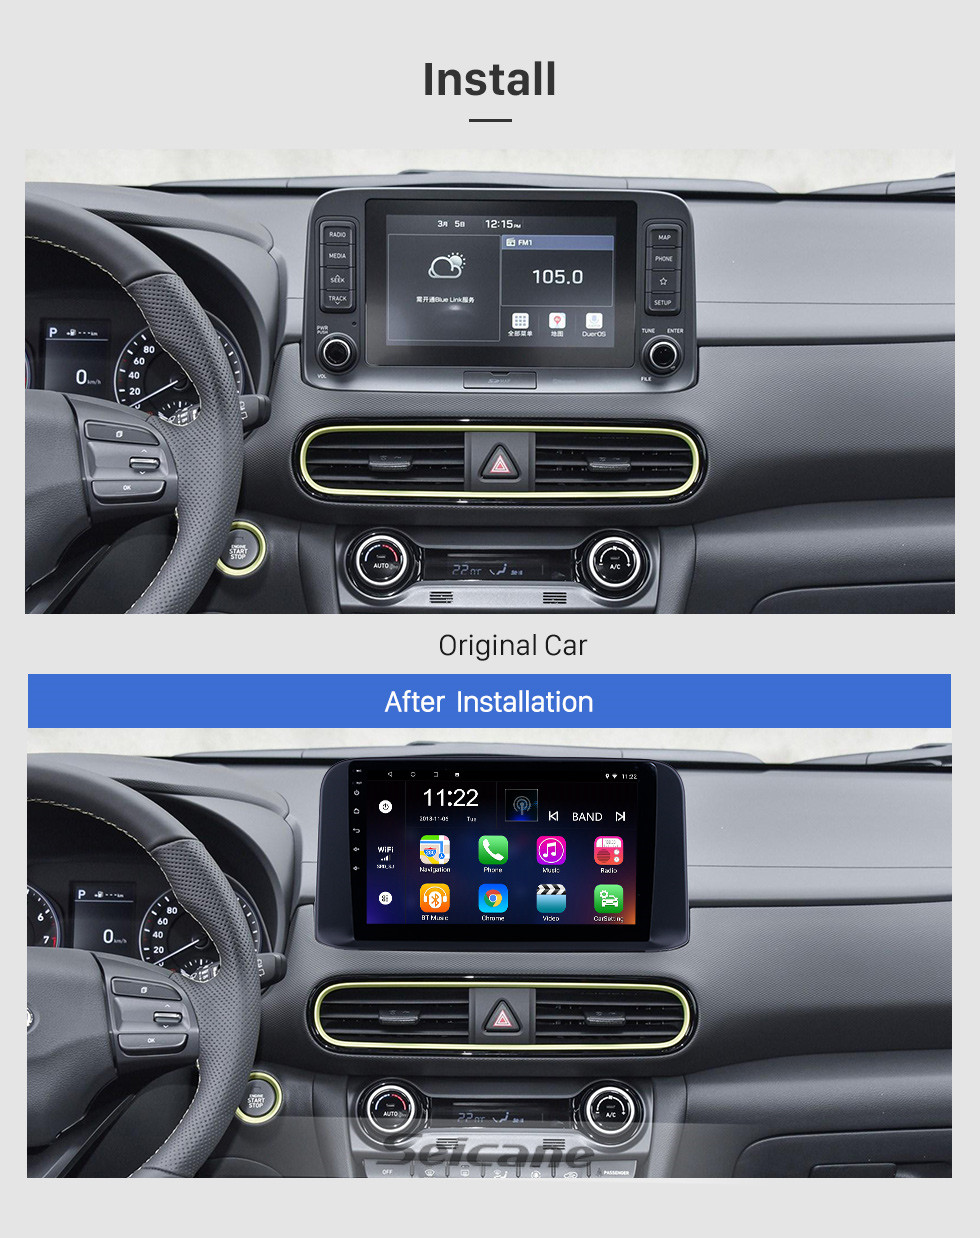 Seicane 10.1 inch 2018 2019 Hyundai TUCSON Android 10.0 HD Touchscreen GPS Navi Radio with WIFI AUX Bluetooth support RDS Carplay 3G Steering Wheel Control